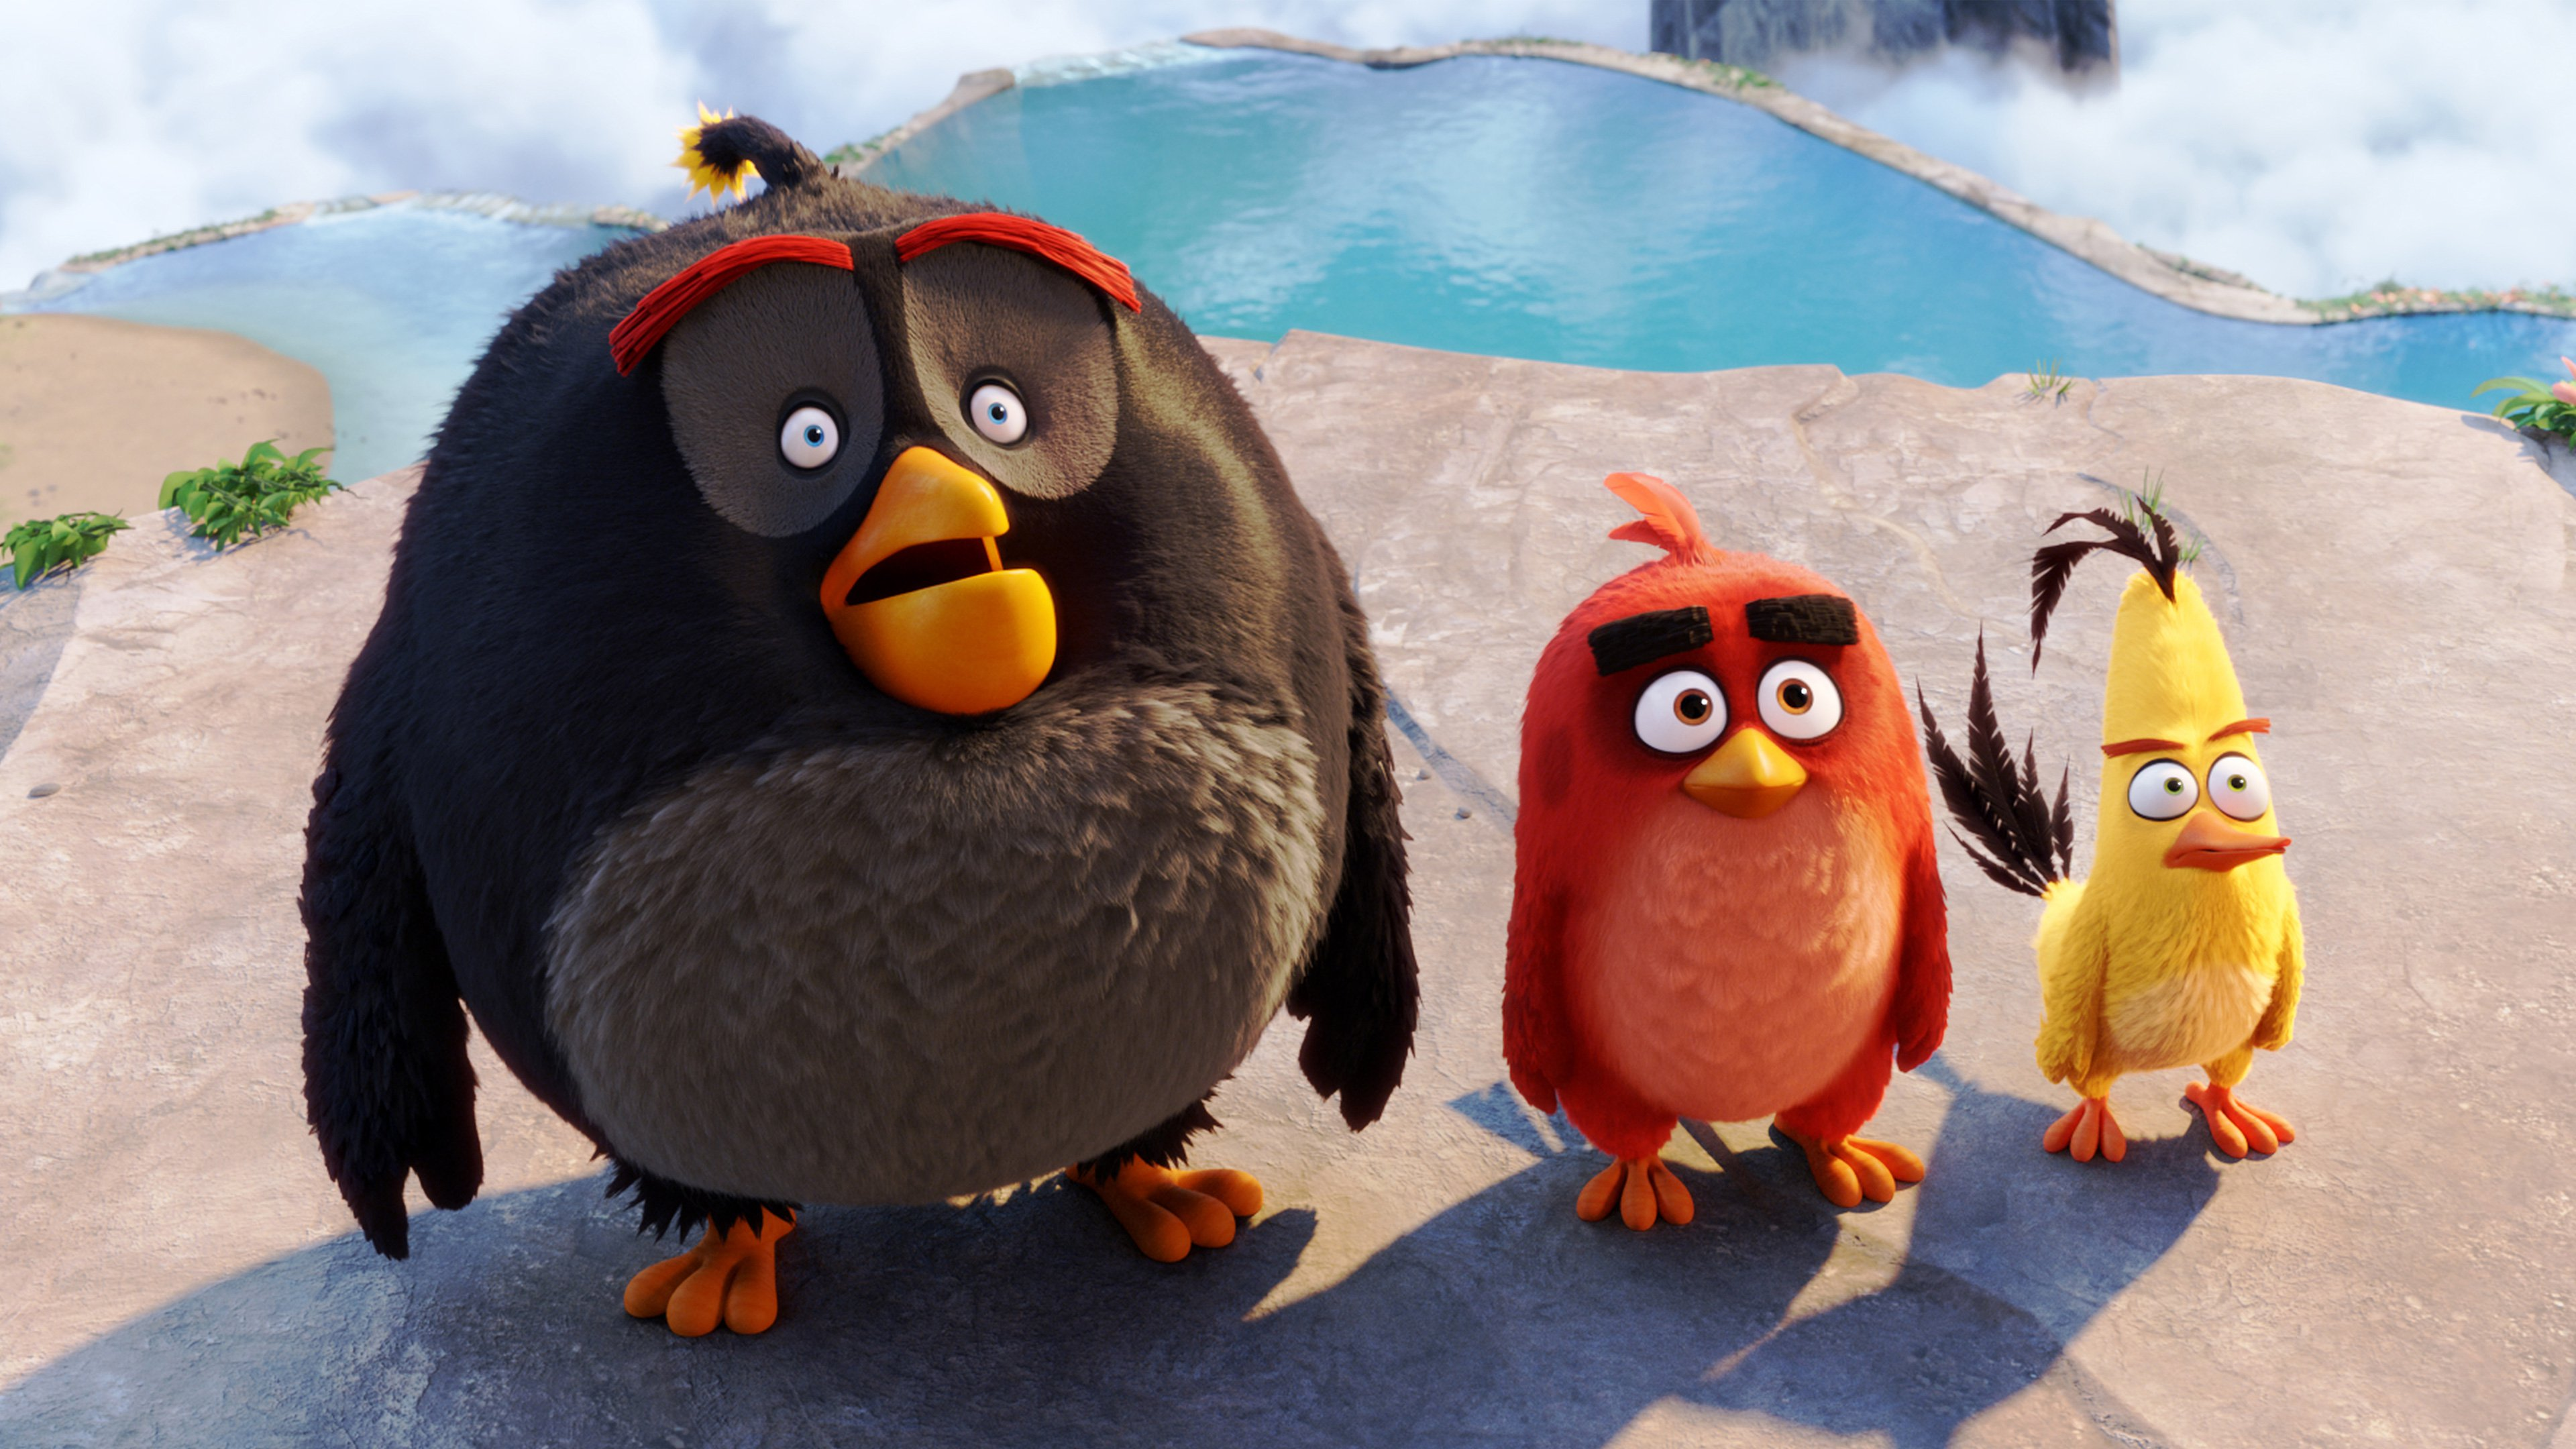 Going to see Angry Birds' movie this week? Don't forget to bring your smartphone with you